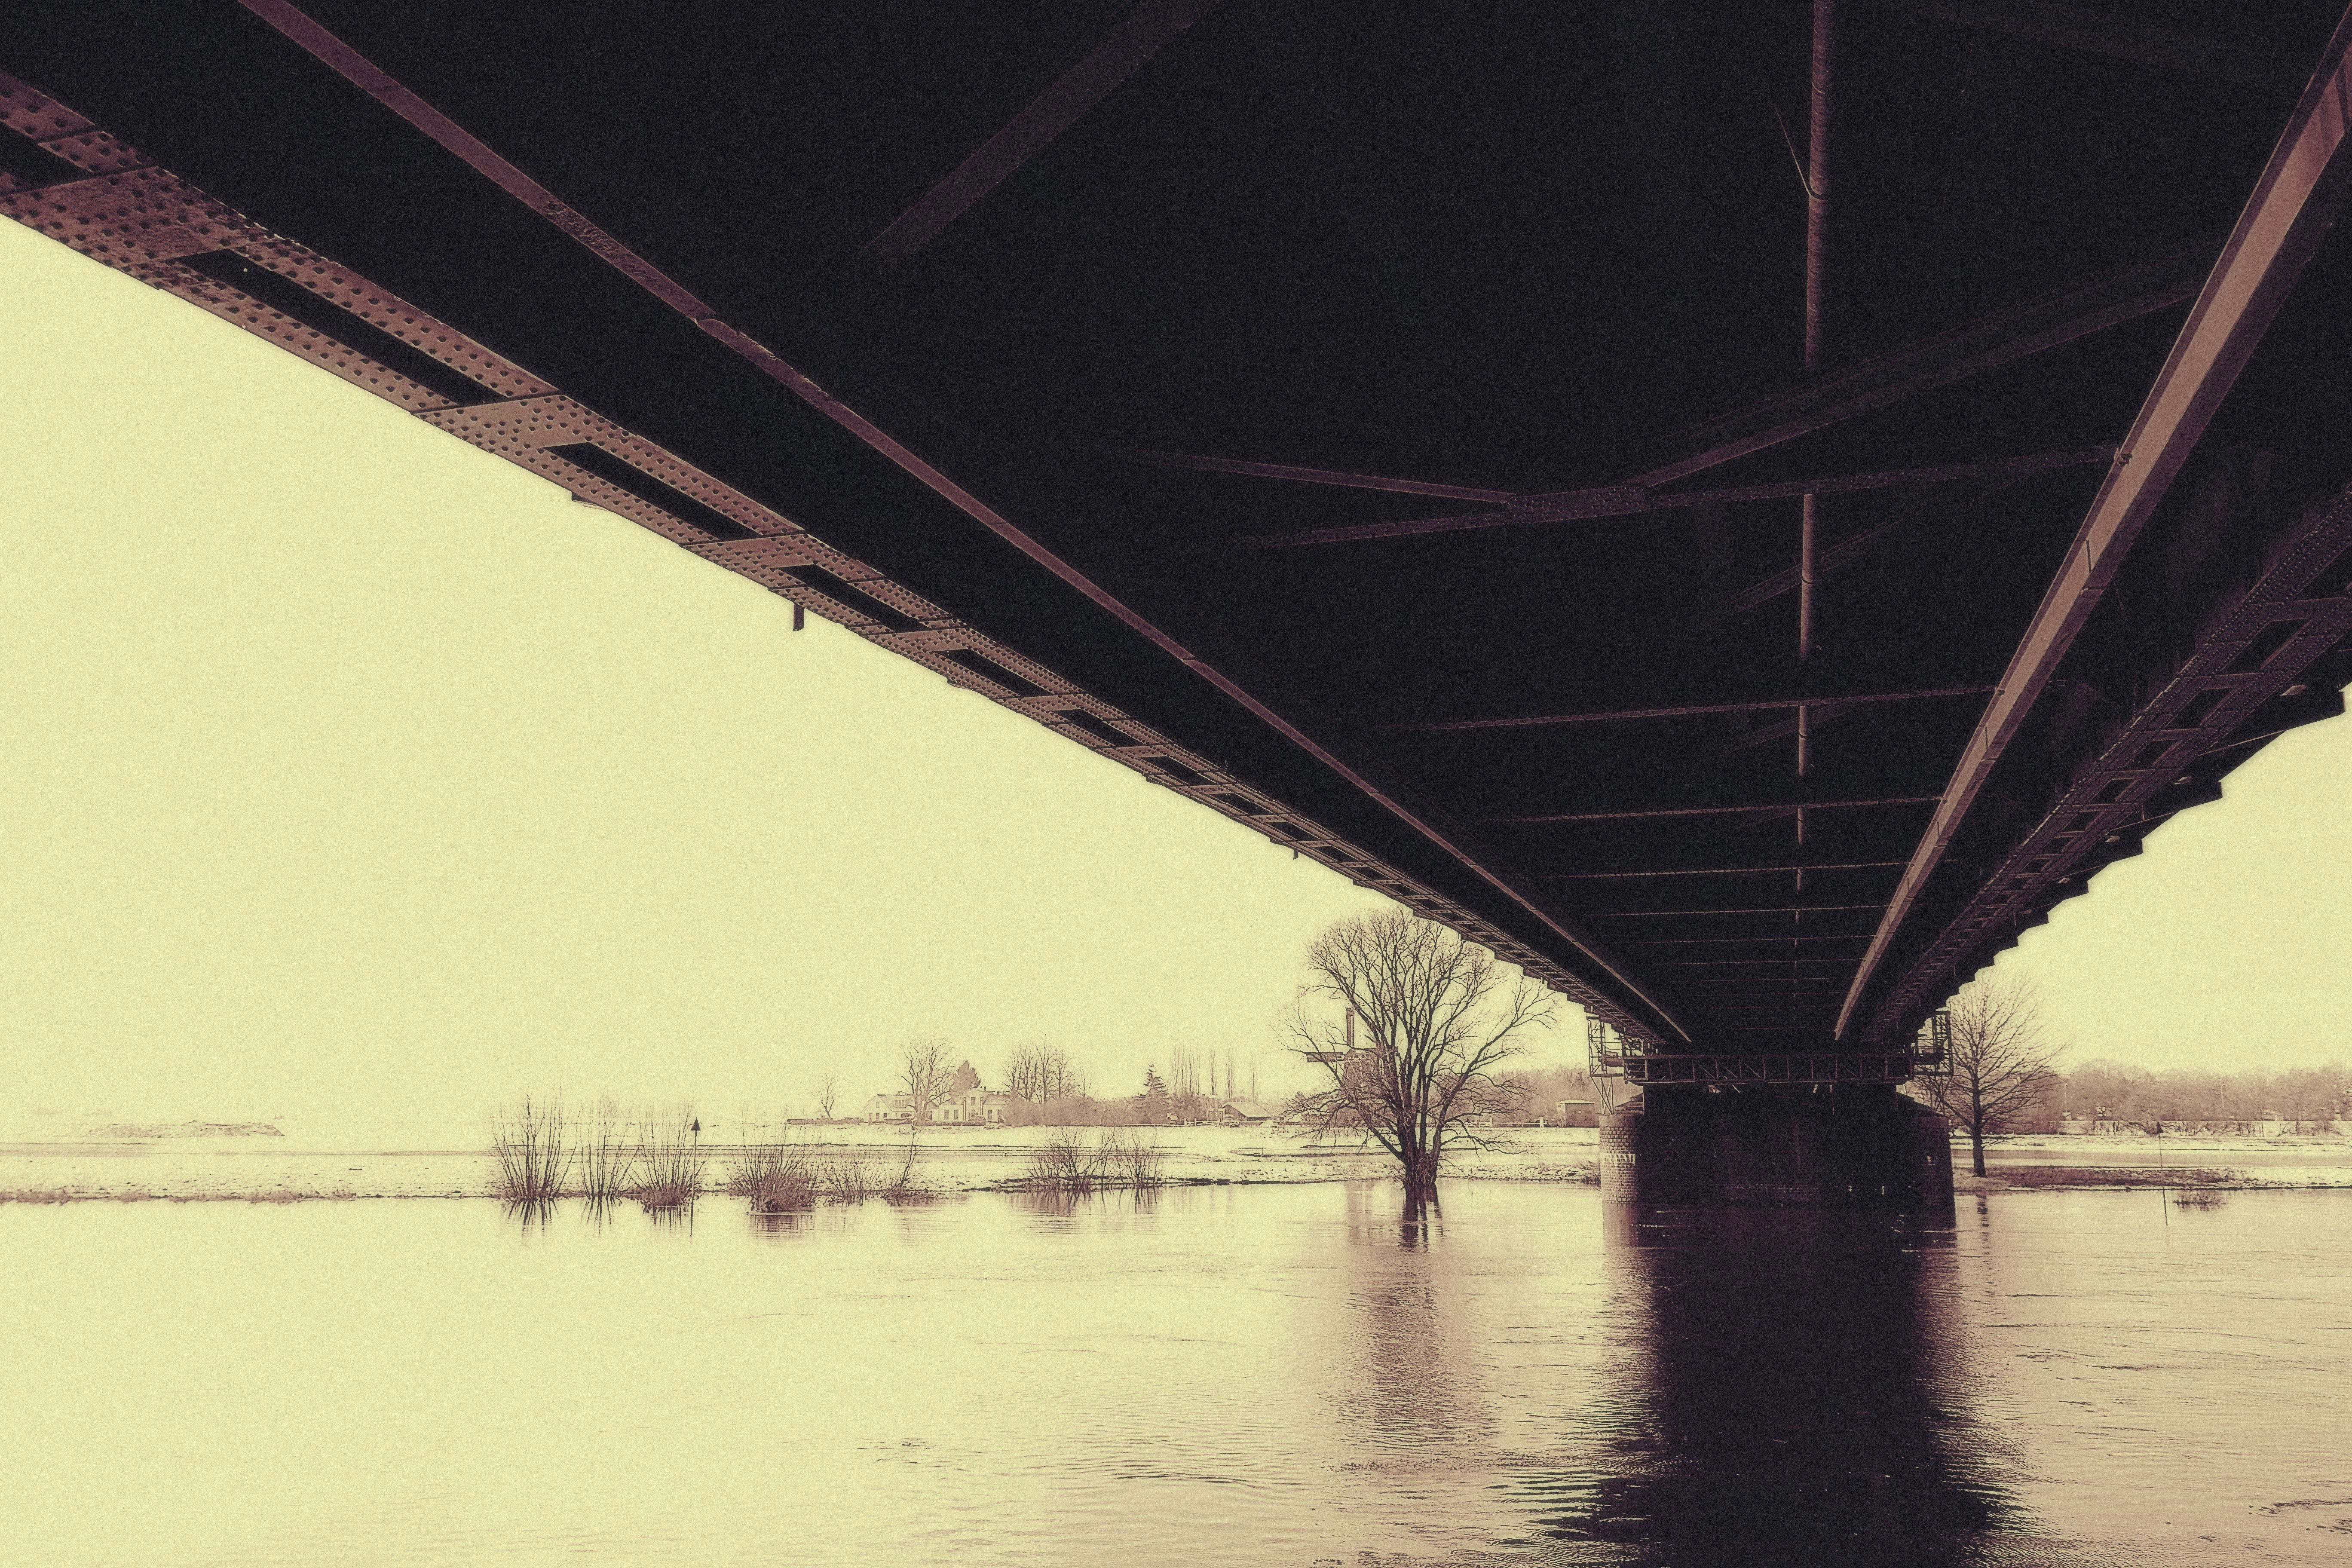 Grayscale Photography of River Under Bridge